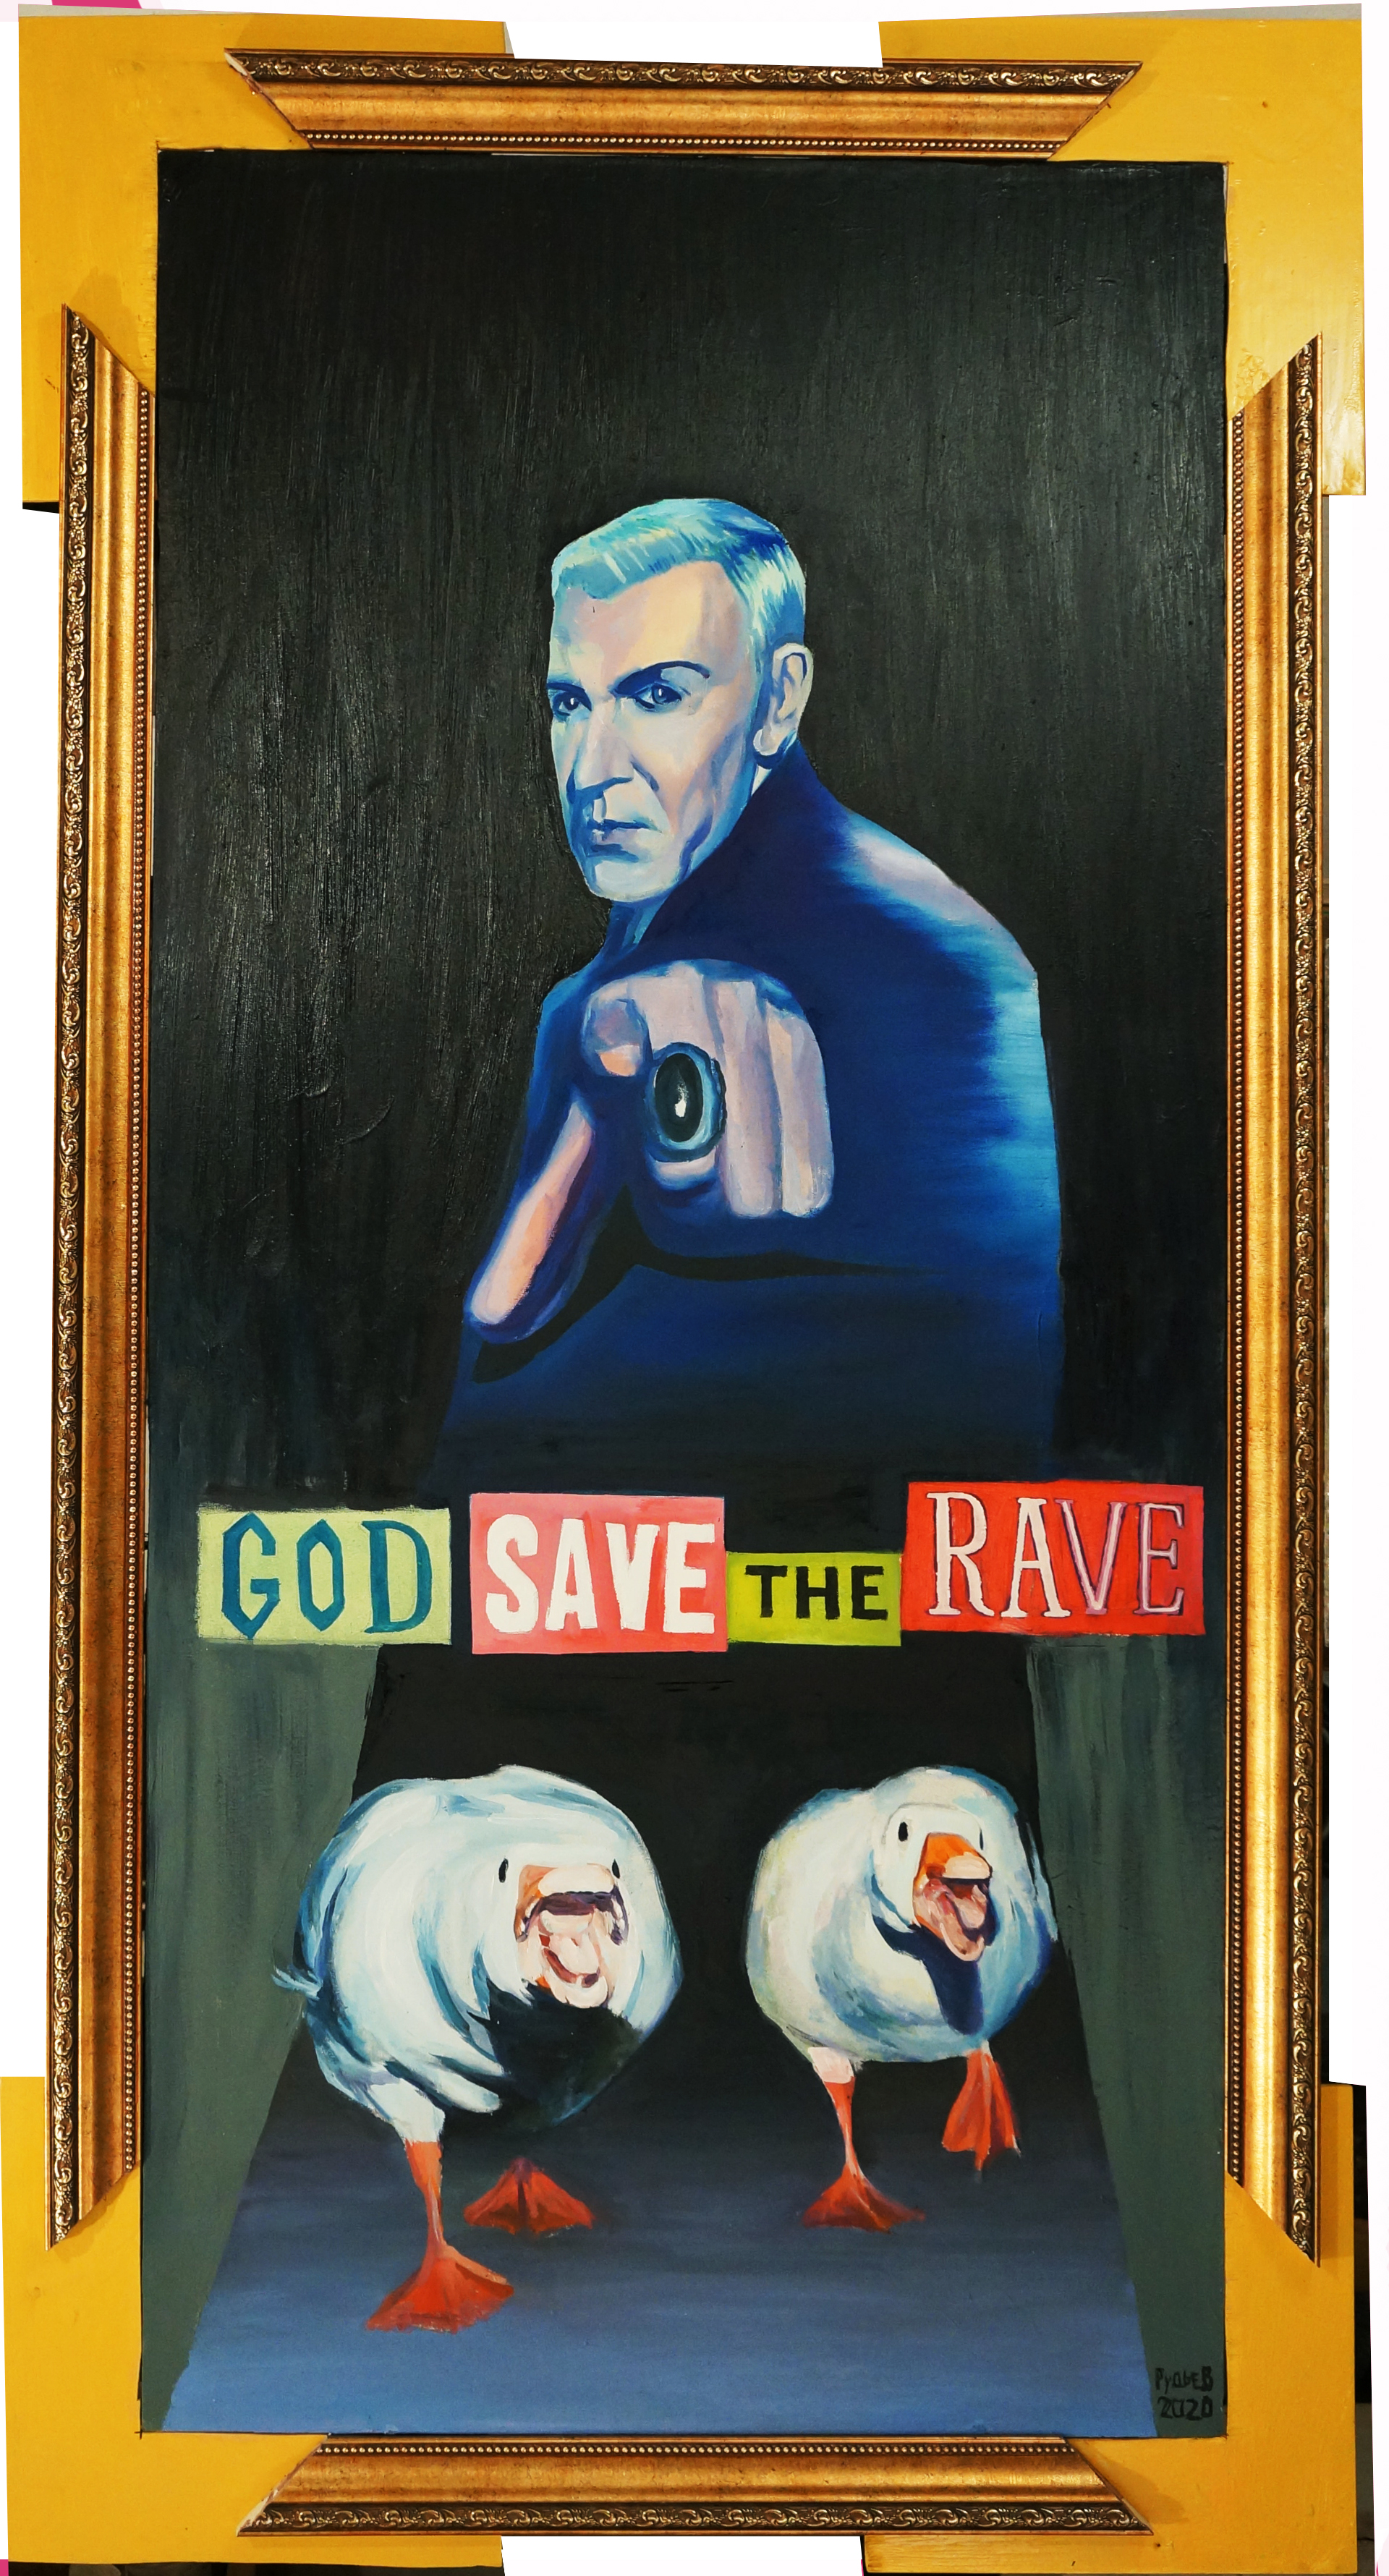 God save the rave 2020,canvas,oil,160х9